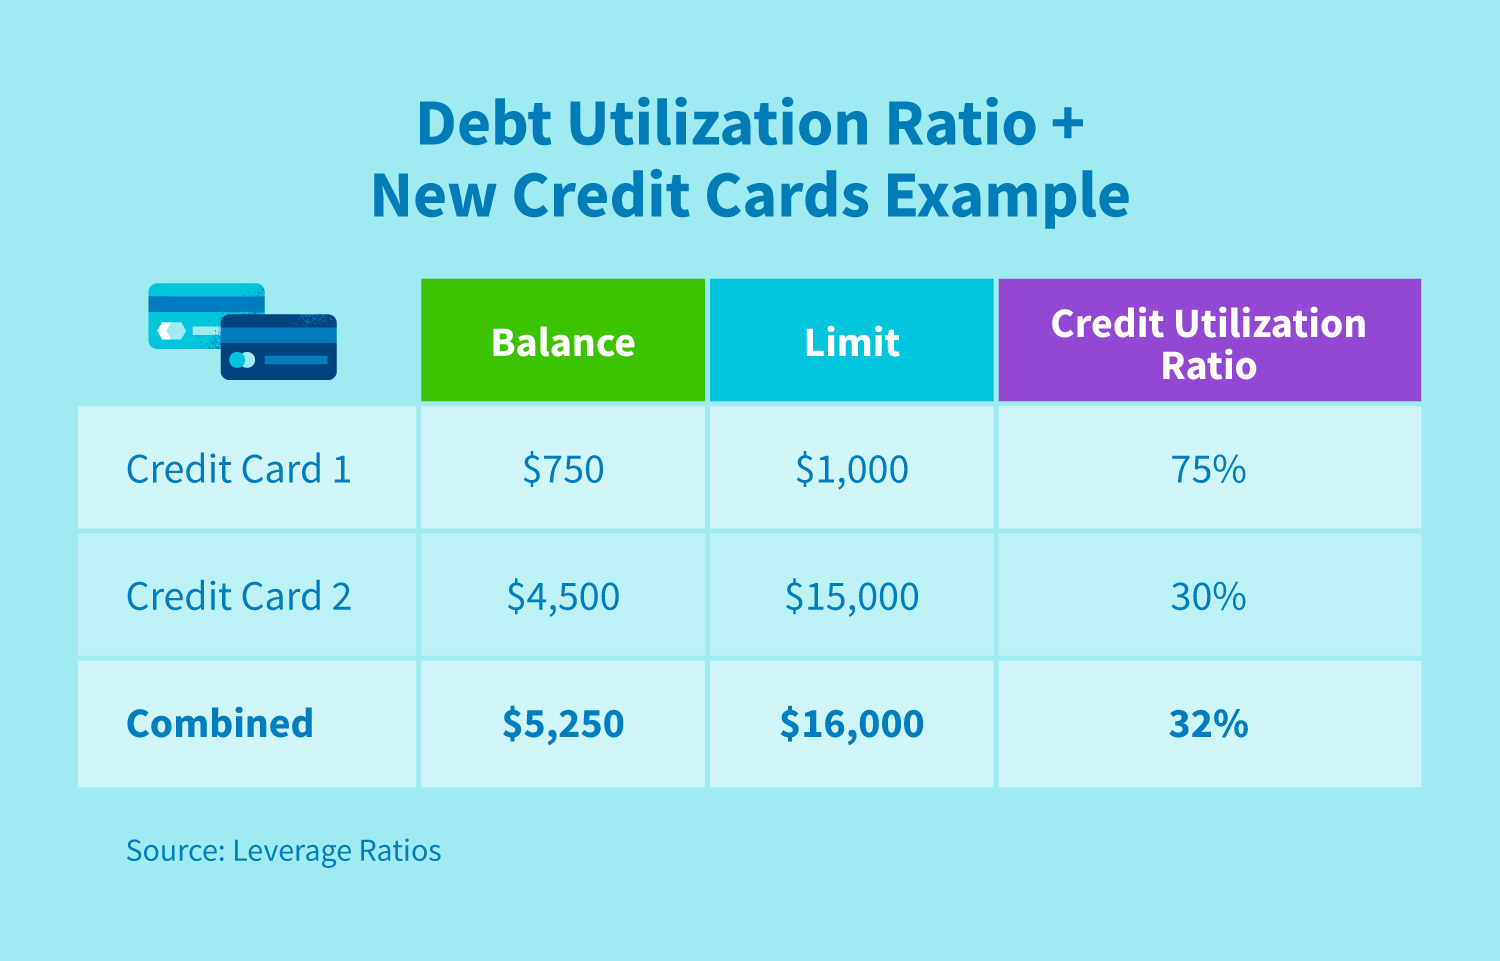 A chart comparing debt utilization ratio and new credit cards.